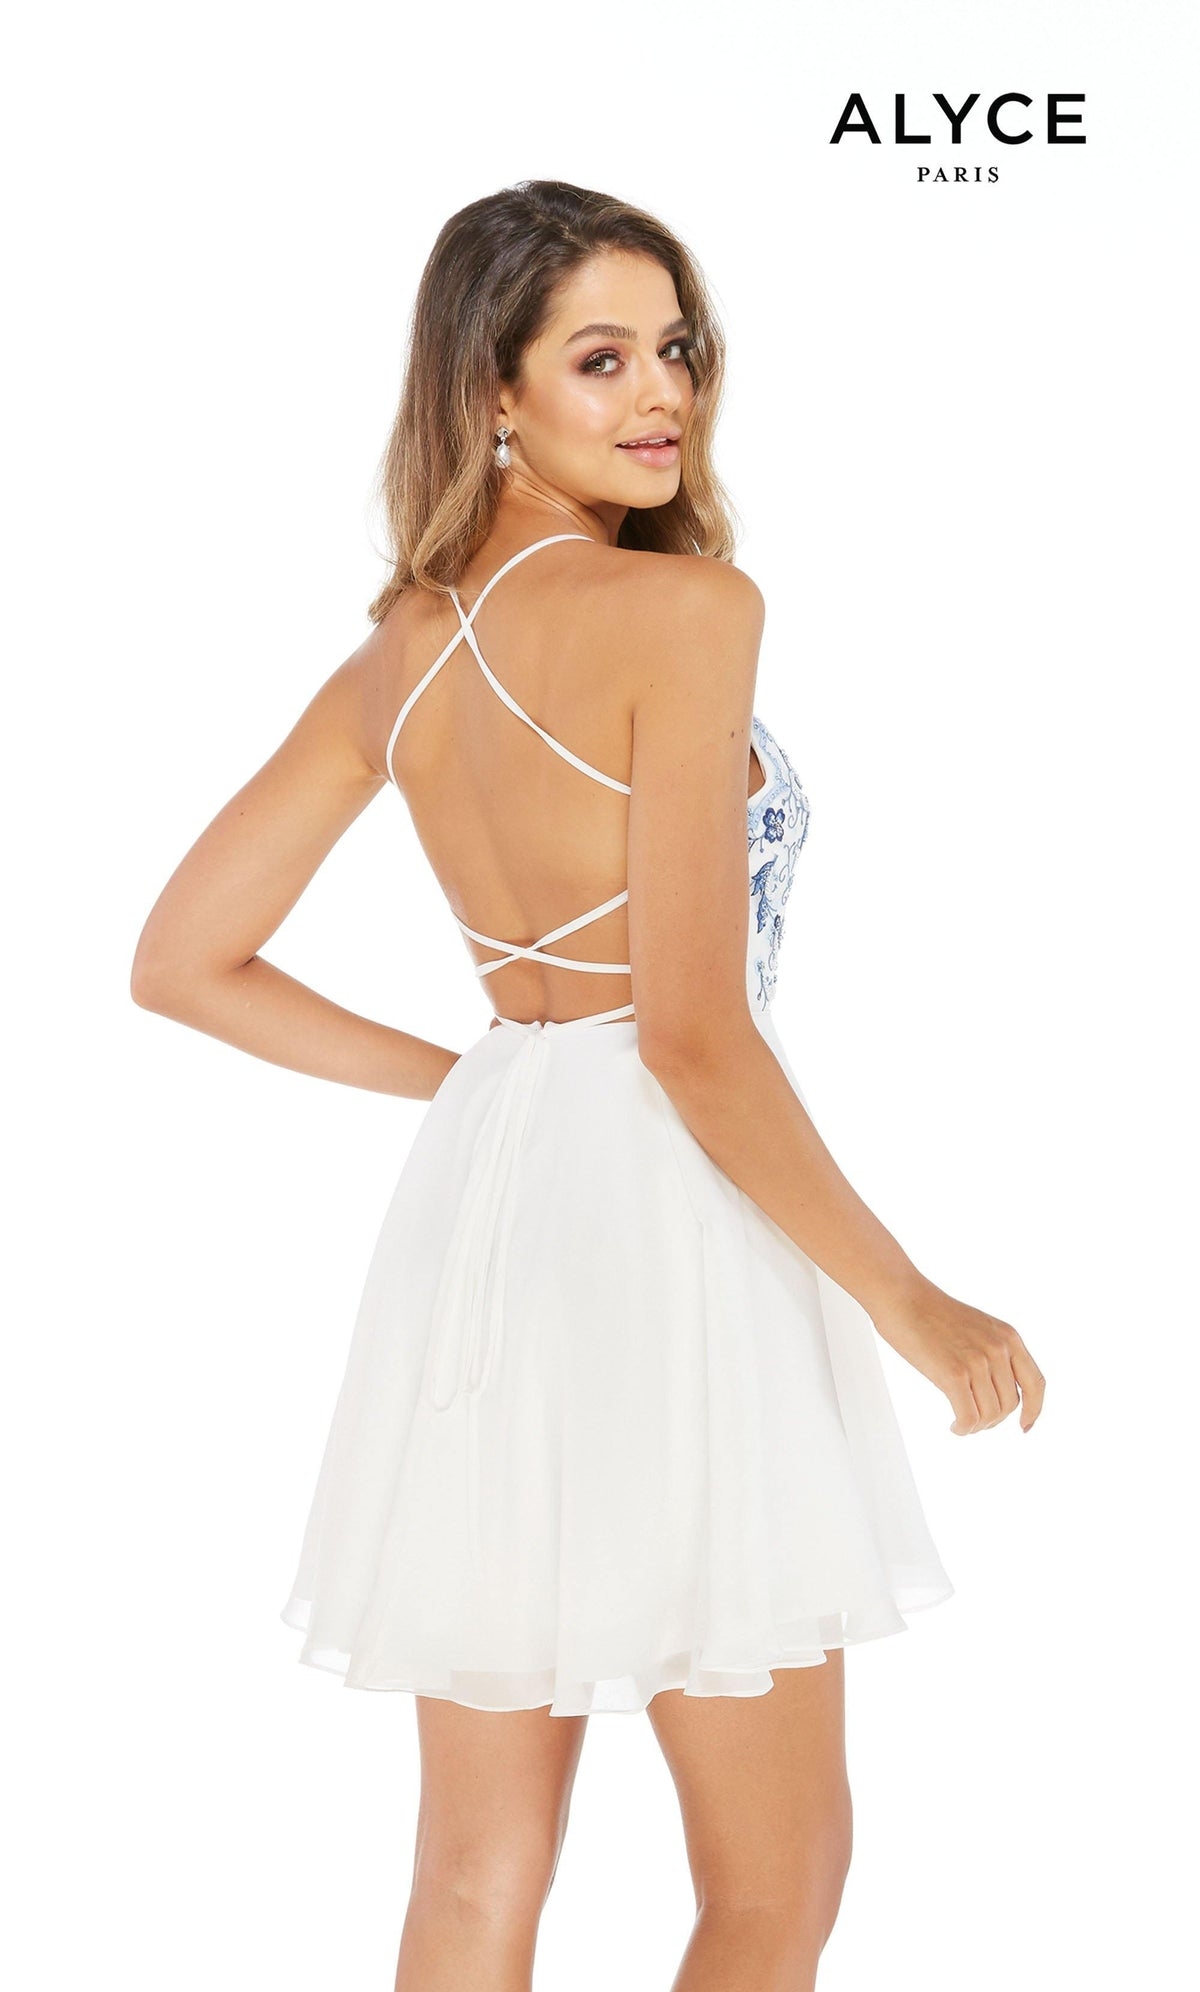 Short white graduation dress with blue floral embroidery on the top and a strappy back